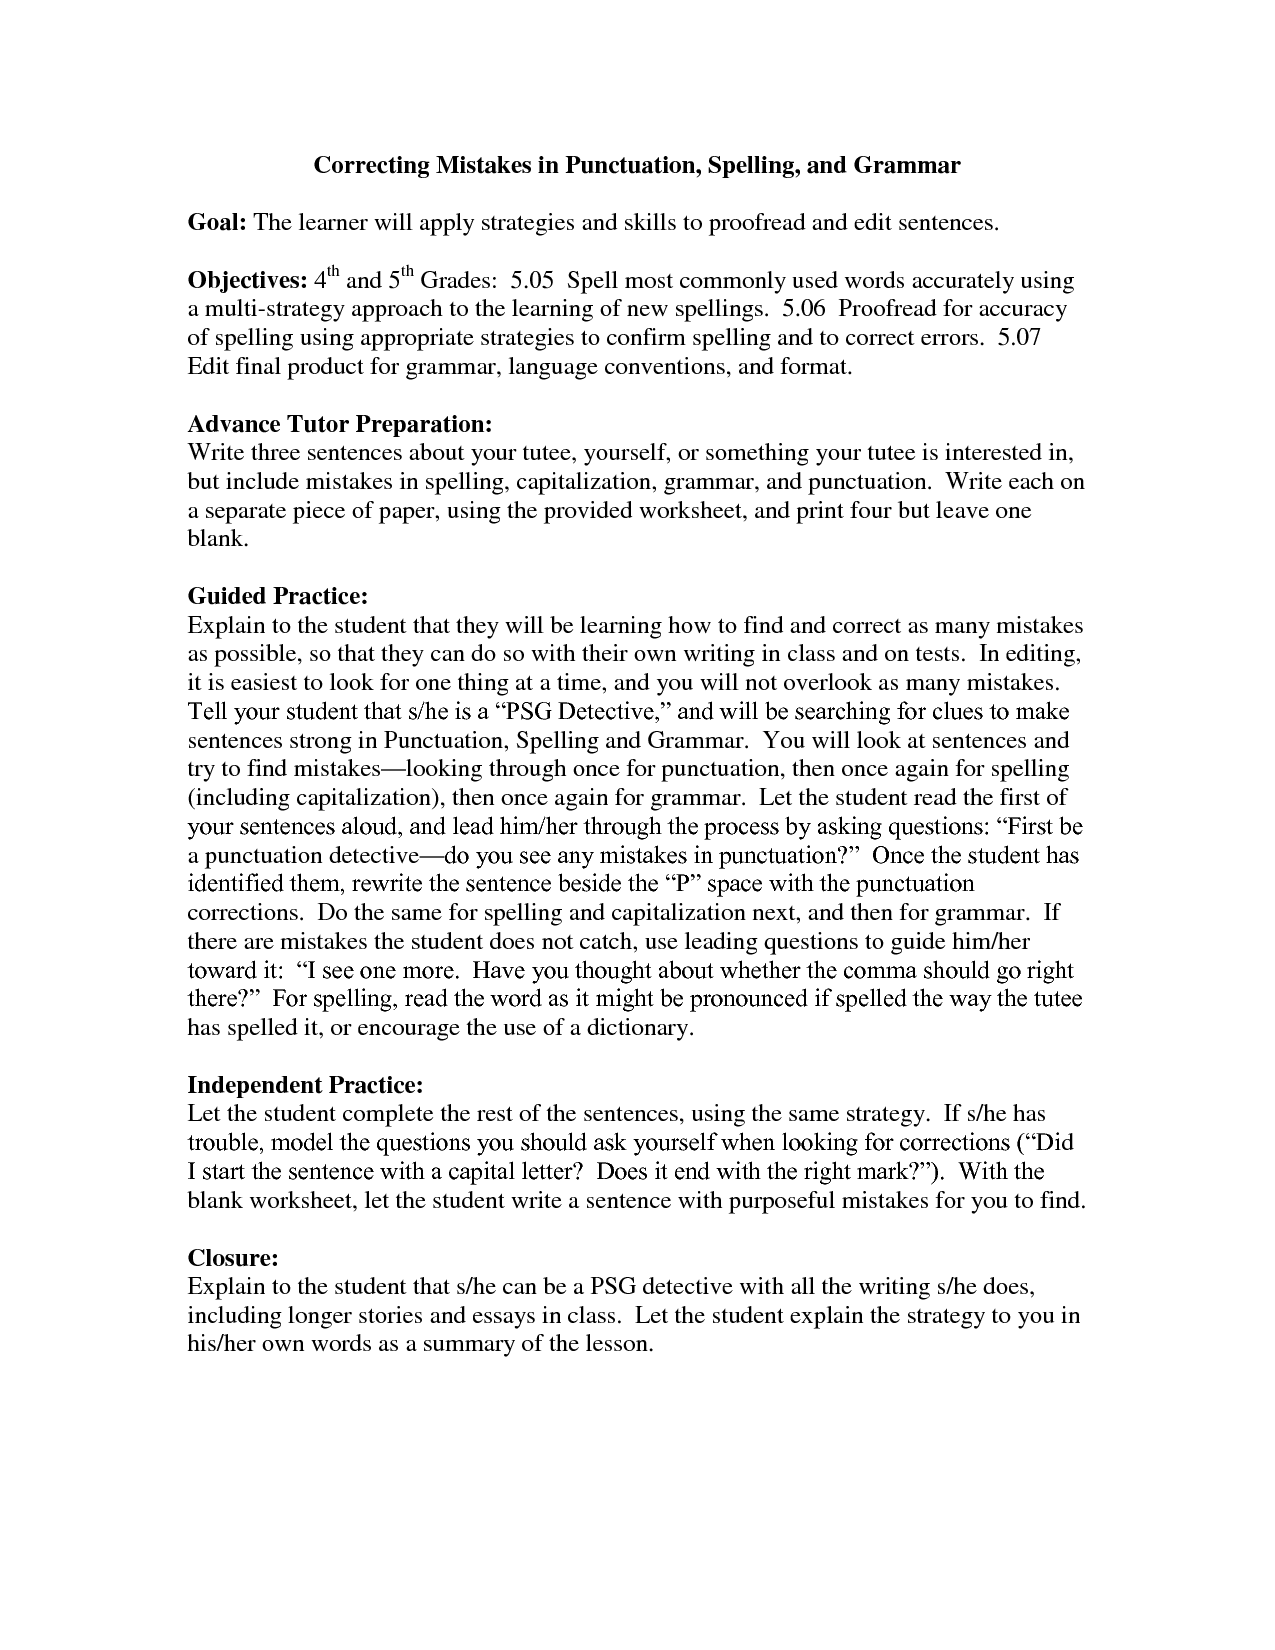 Worksheet Capitalization Worksheets 4th Grade Grass